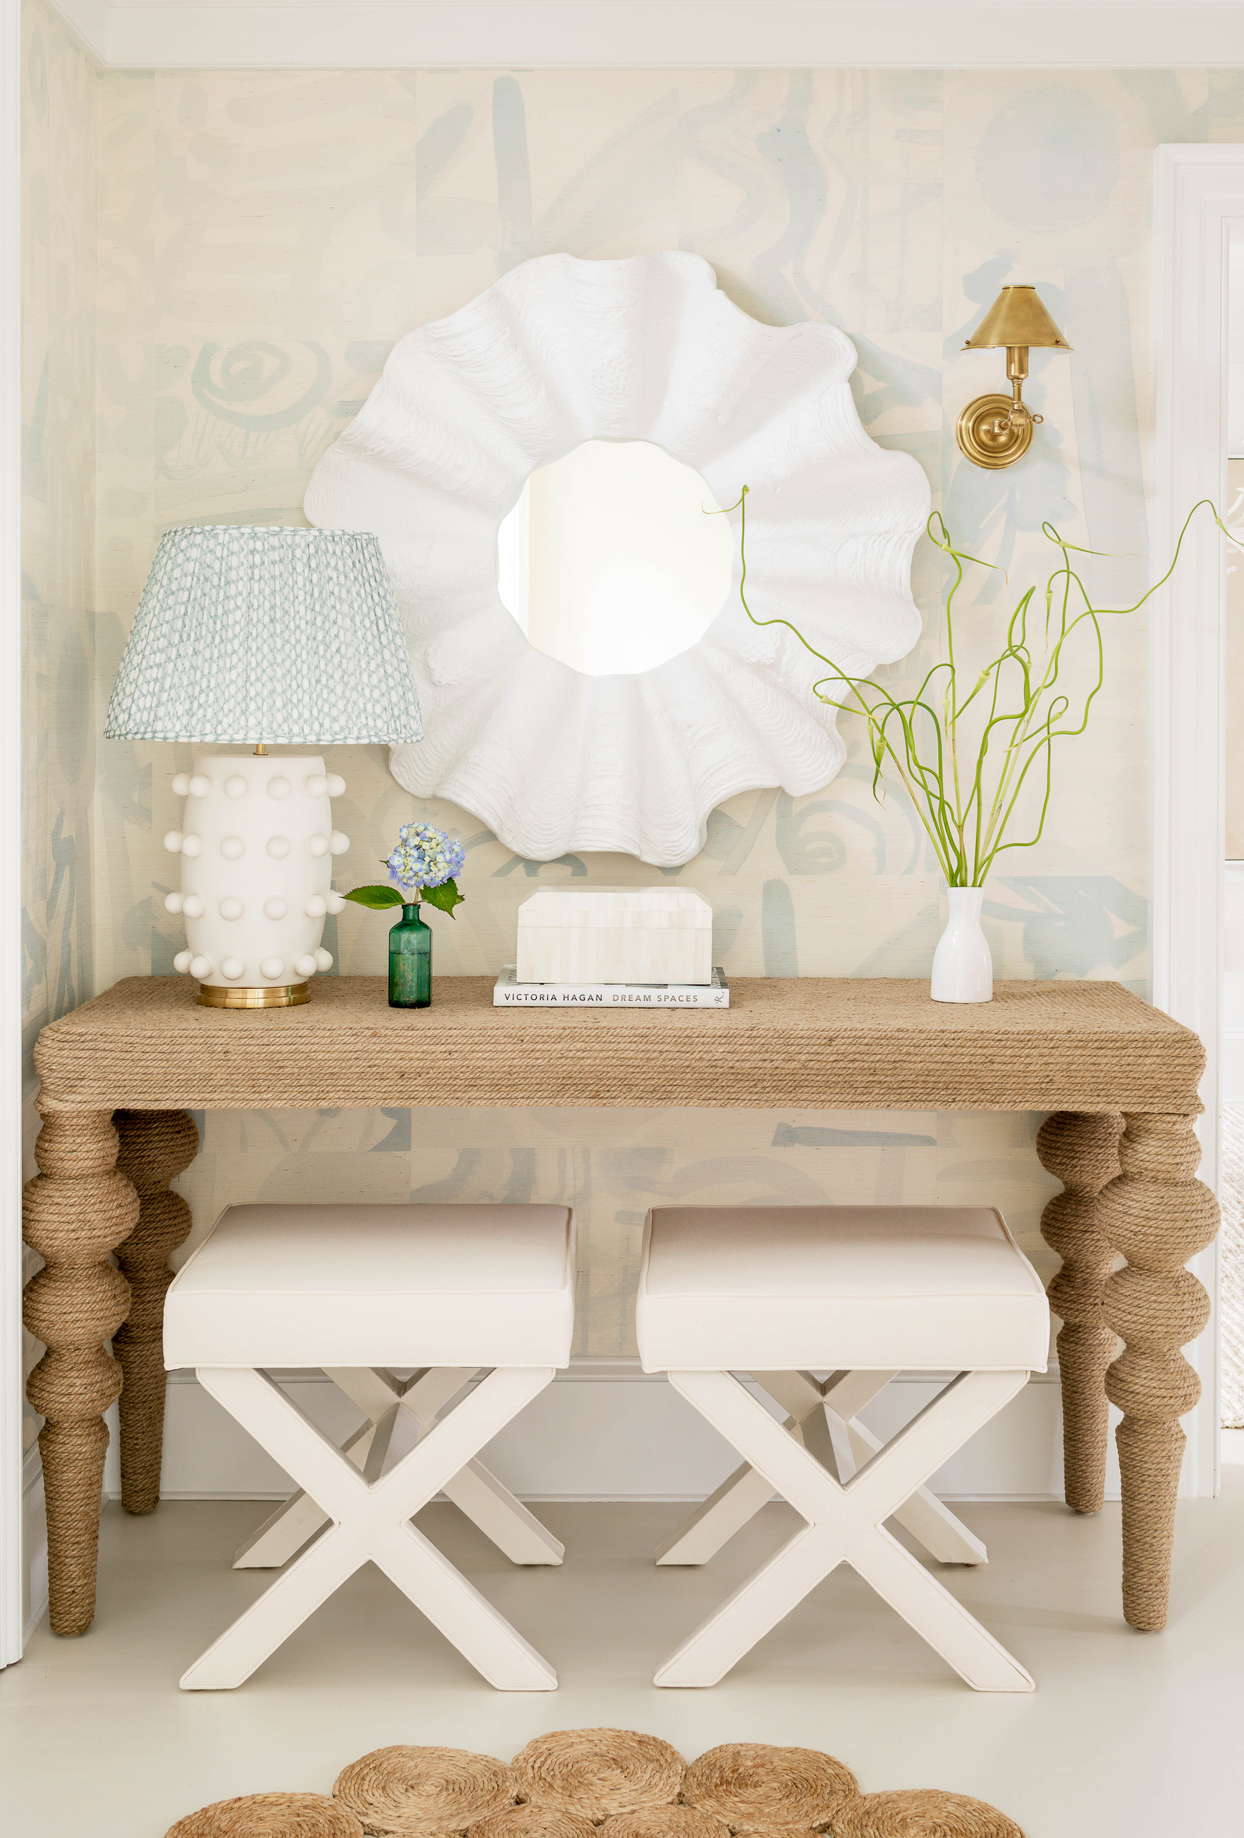 rope-wrapped console and wavy mirror